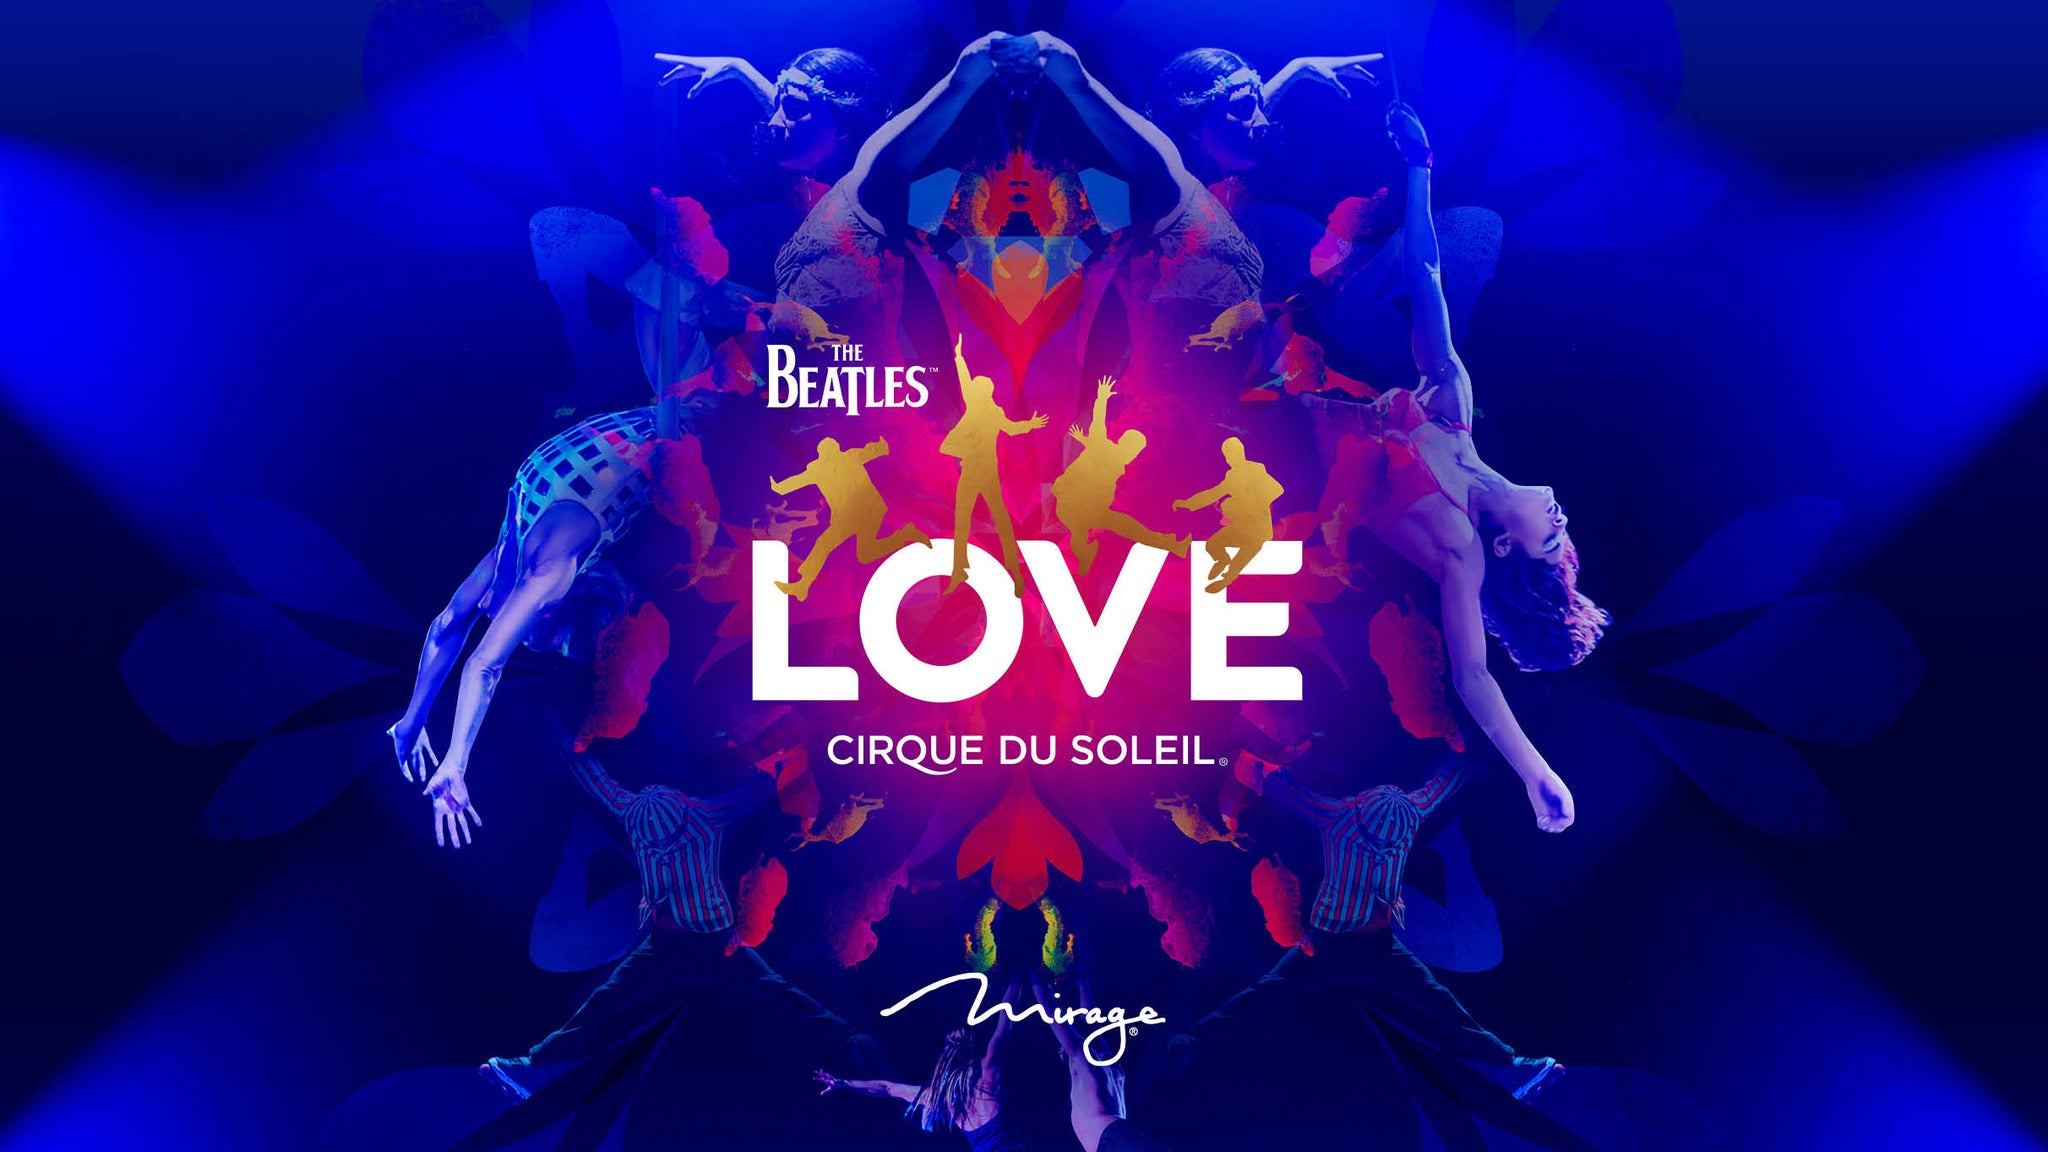 Cirque du Soleil: Love at Mirage - LOVE Theatre